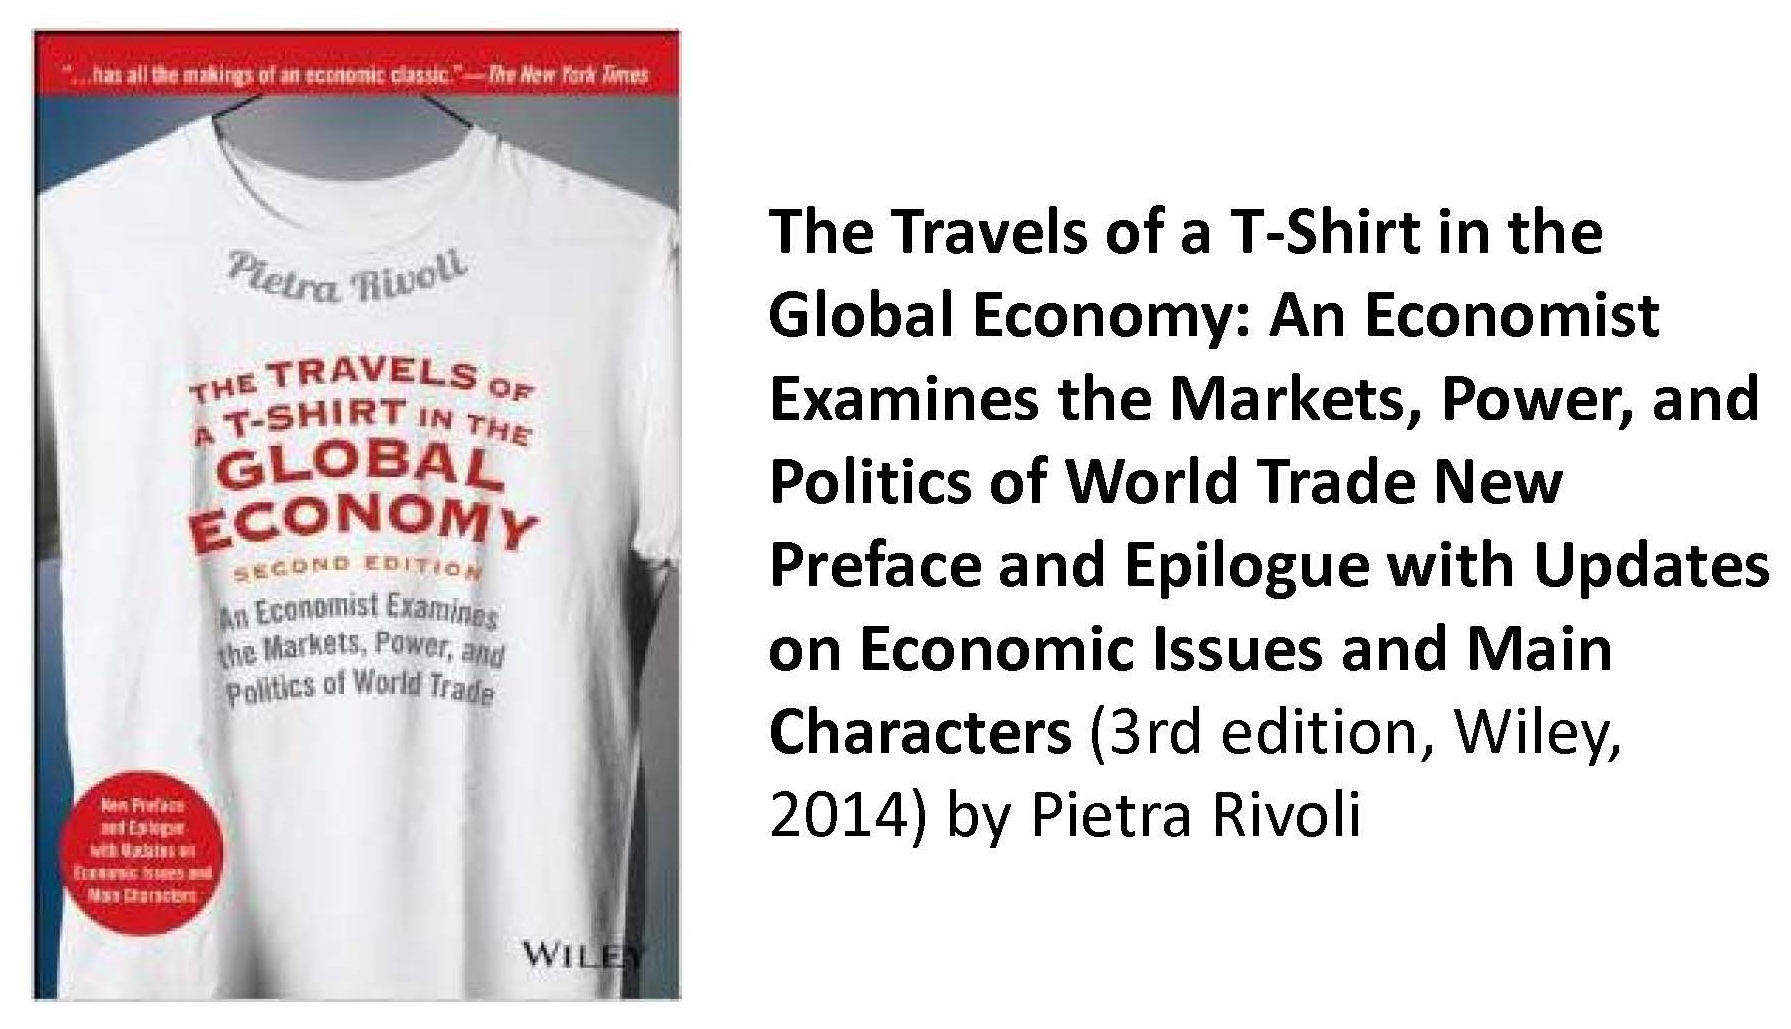 travels of a t shirt in the global economy Praise for the travels of a t-shirt in the global economyengrossing (rivoli) goes wherever the t-shirt goes new york public library browse options.